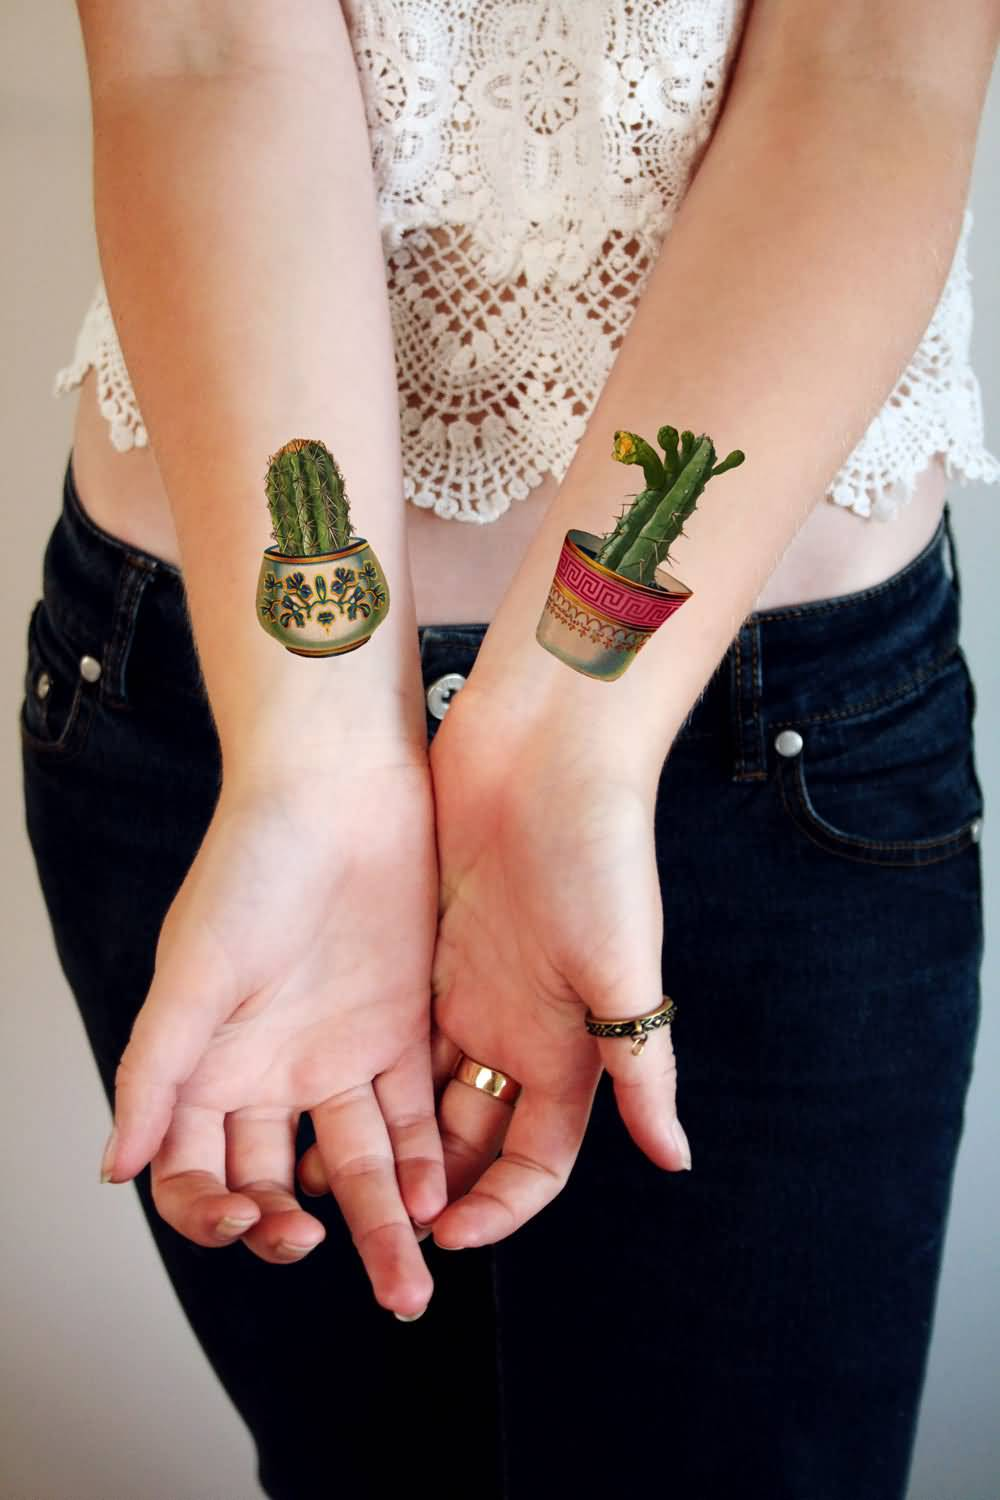 078123d108ab4 Small Wonderful Cactus In Pot Tattoos On Both Wrists